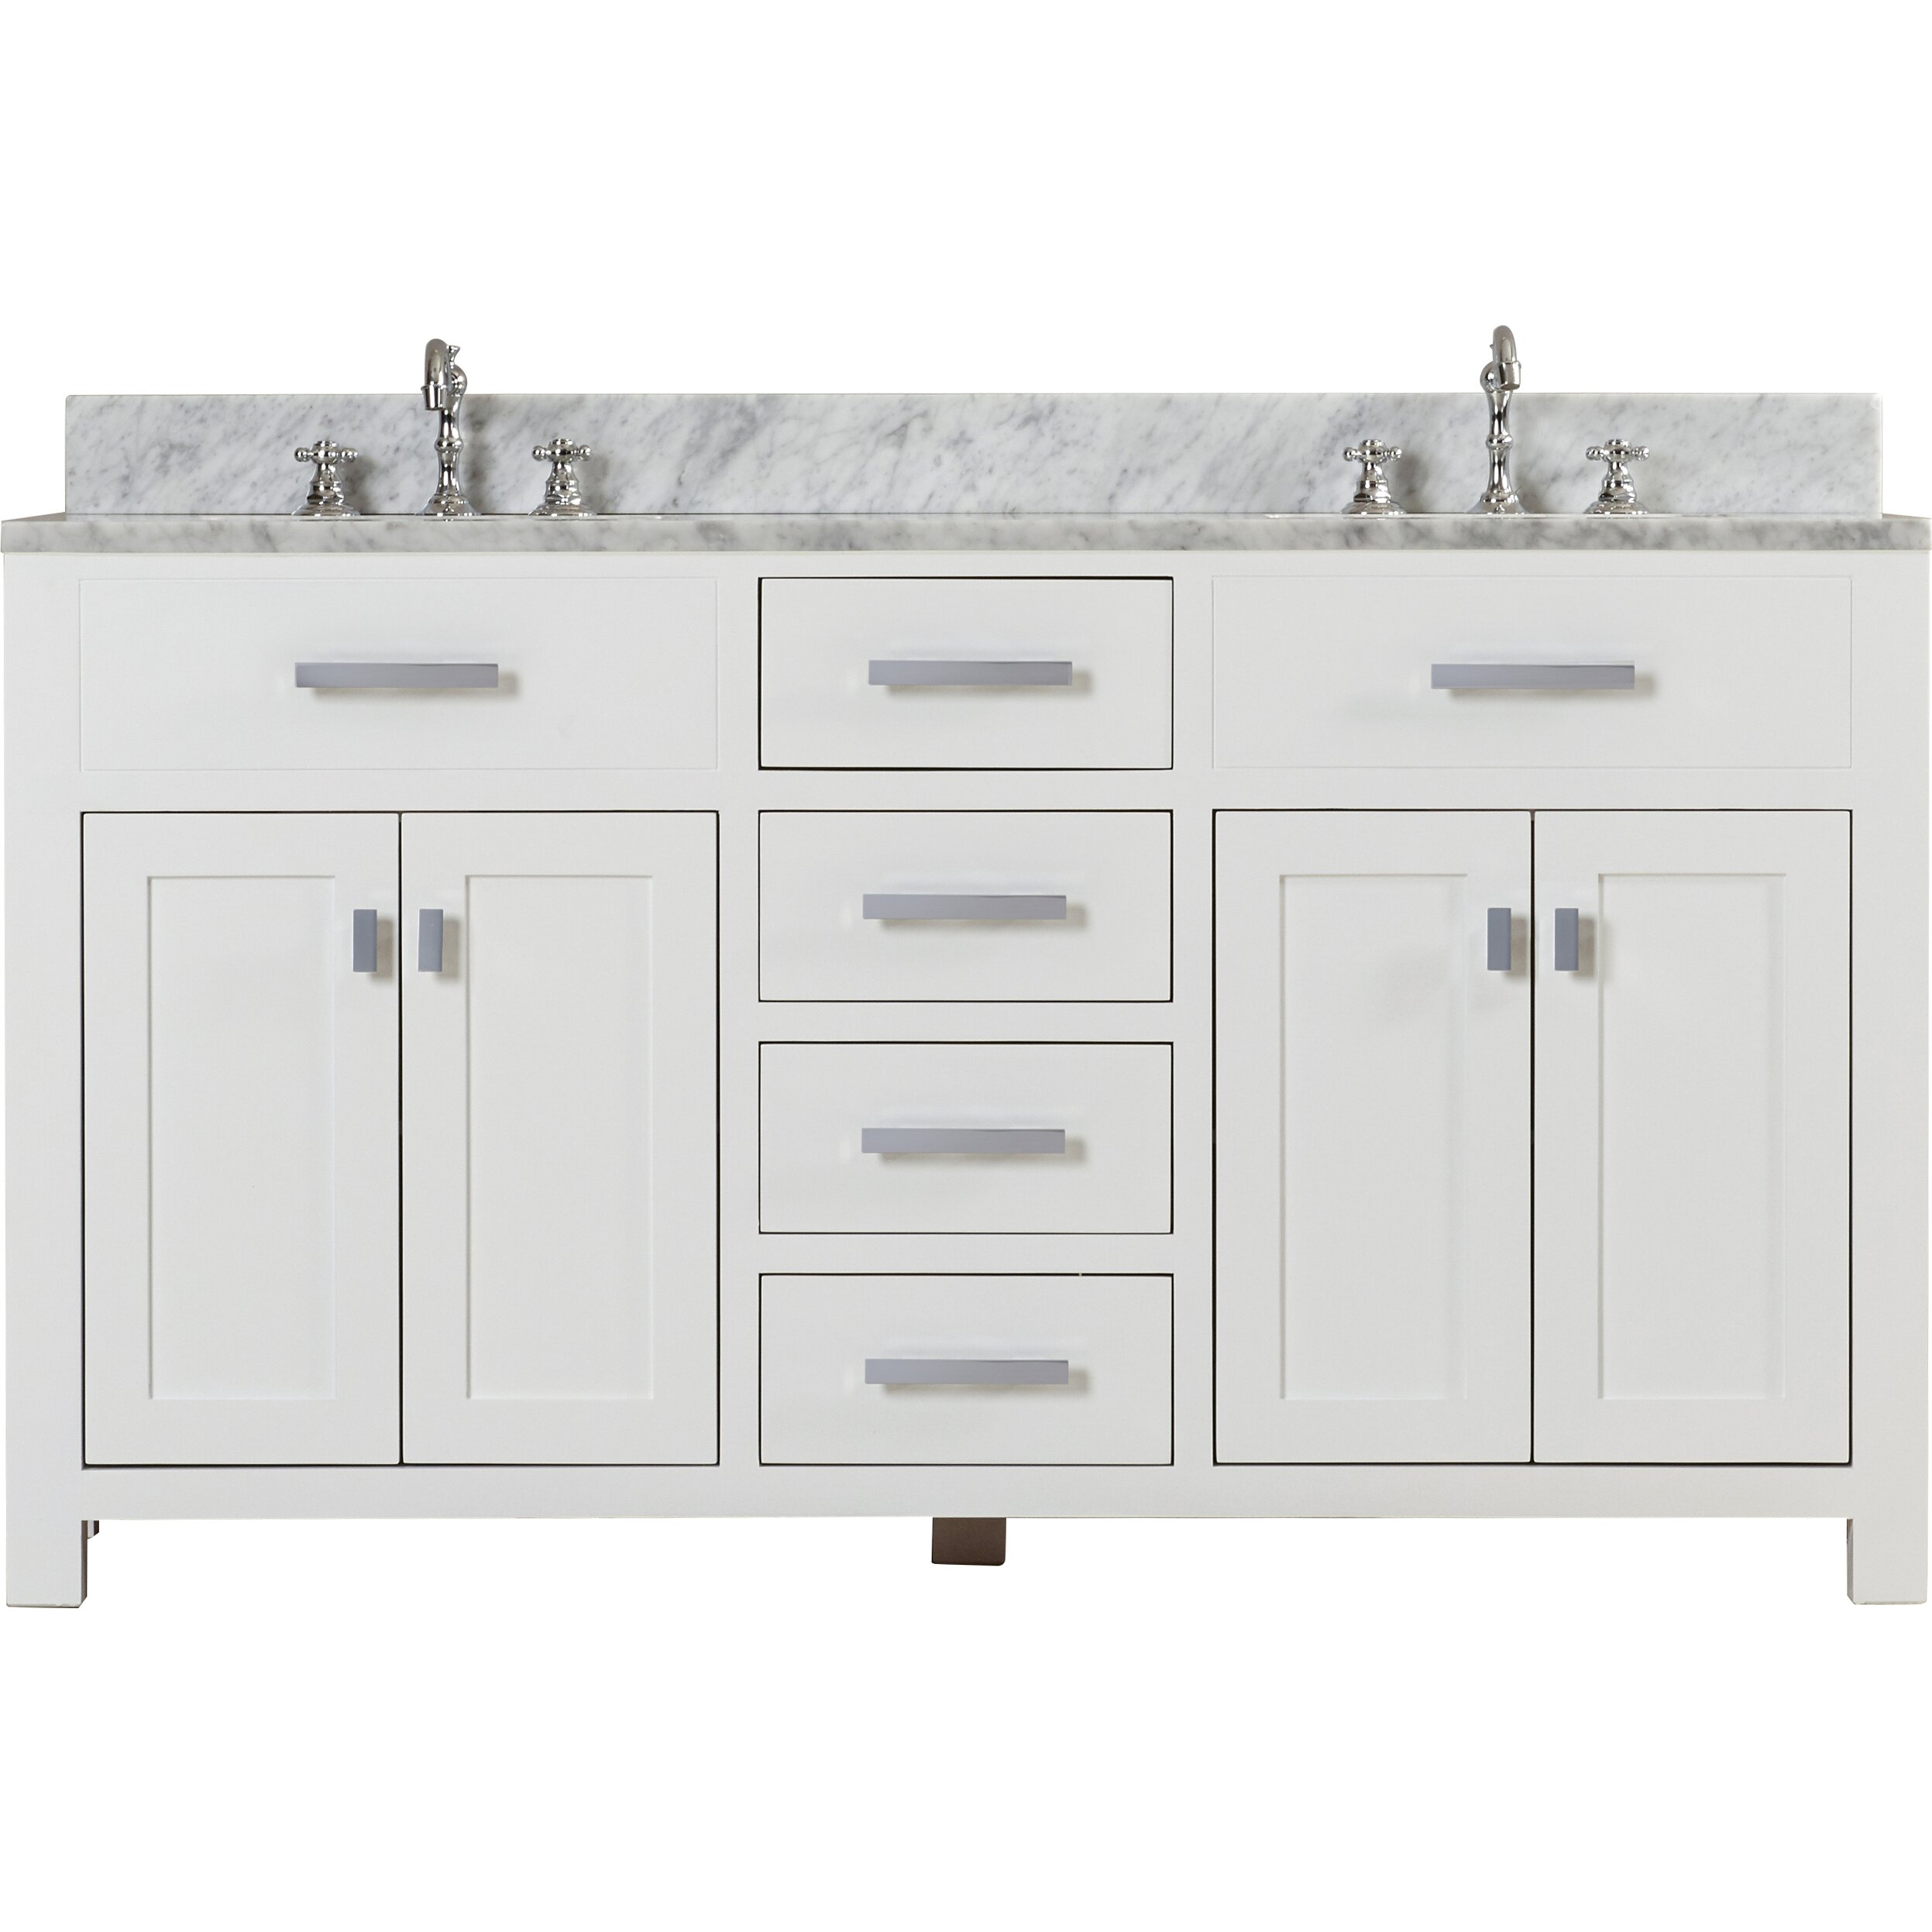 Dcor Design Creighton 60 Double Bathroom Vanity Set Reviews Wayfair